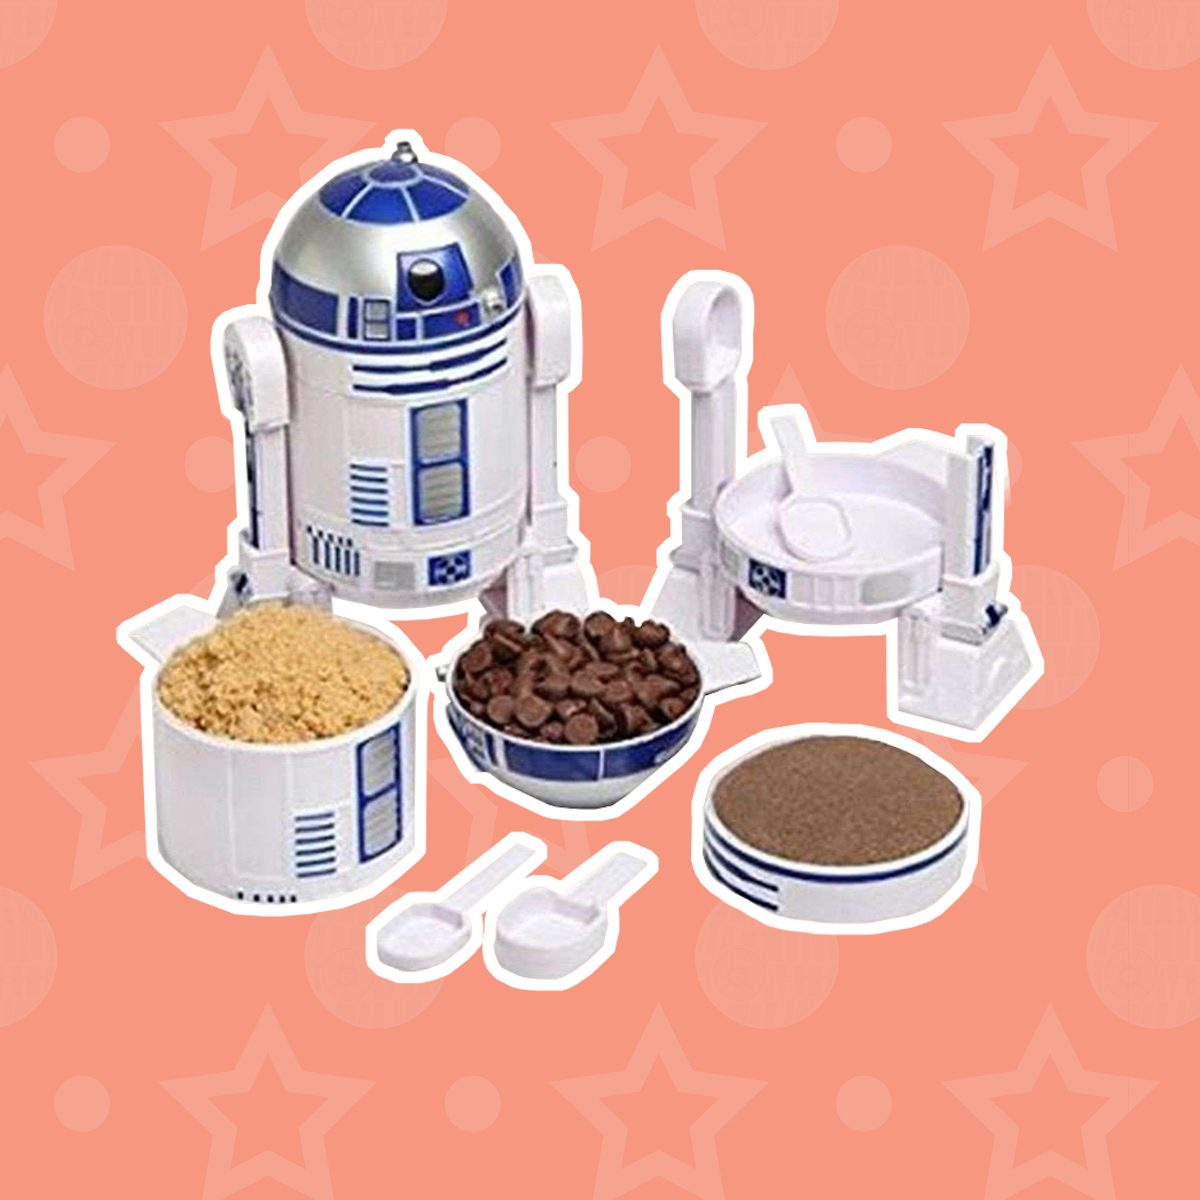 14 Star Wars Gadgets To Bring The Force To Your Kitchen